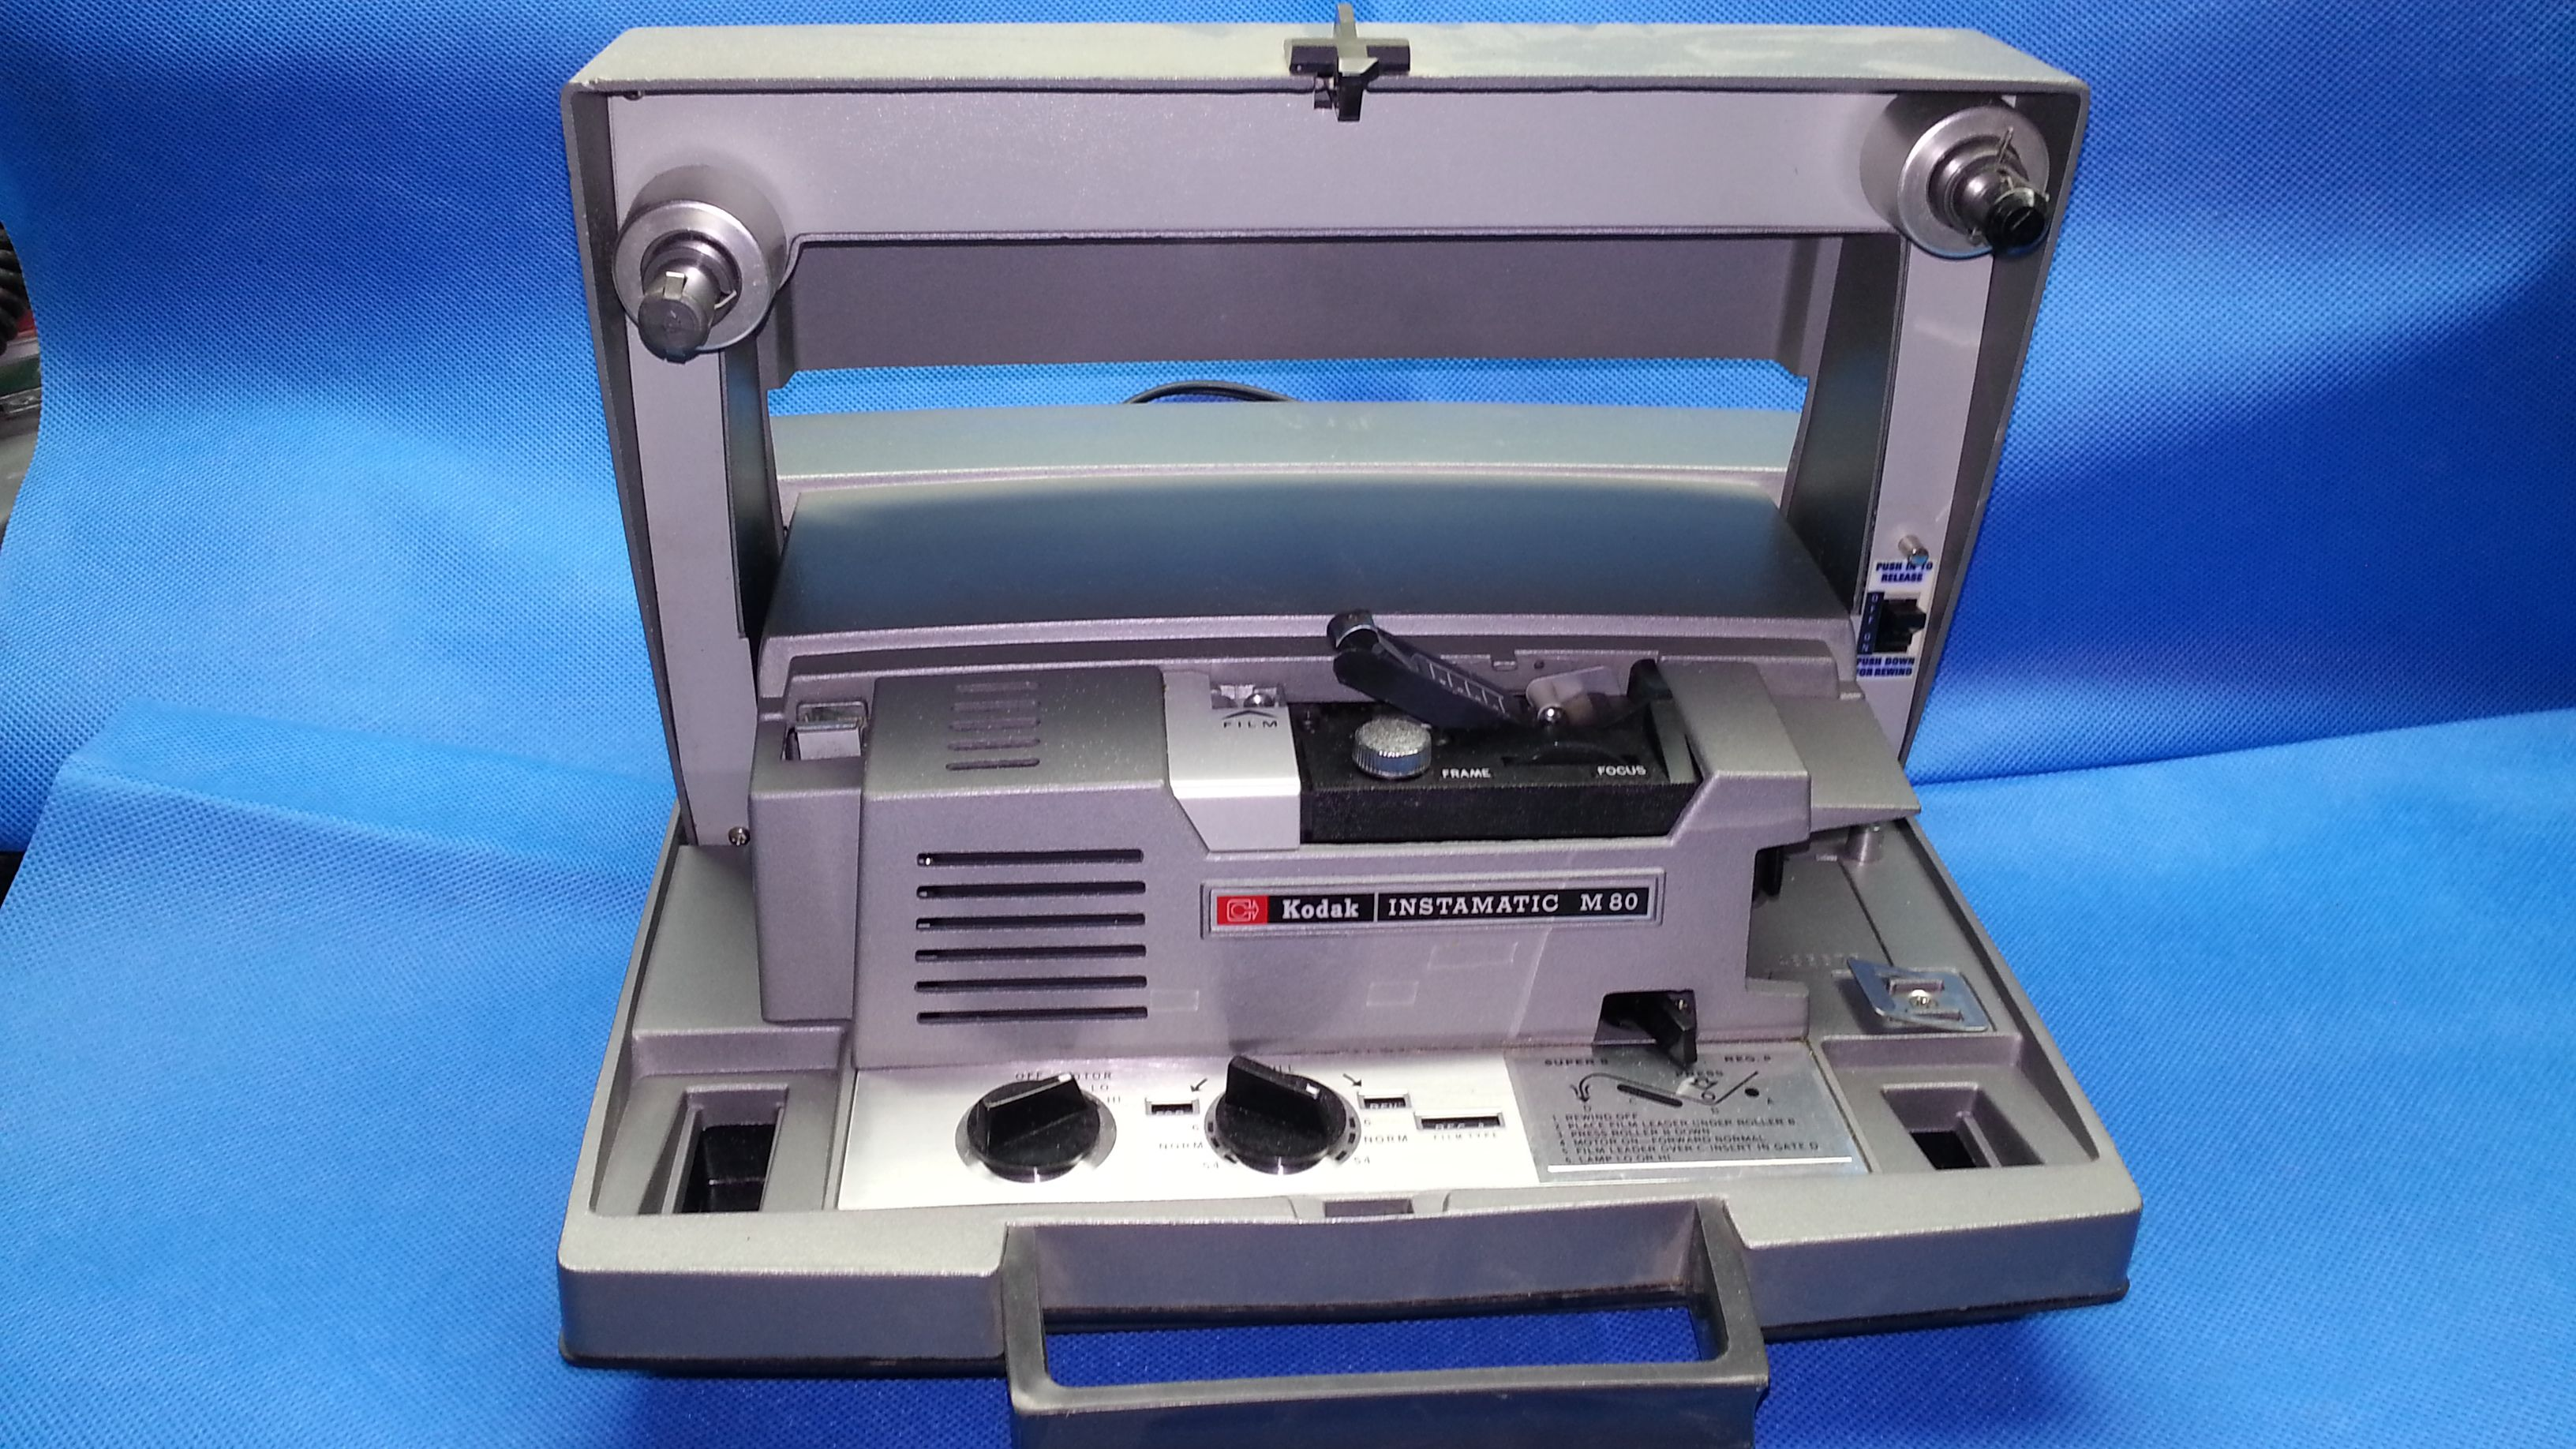 Kodaks instamatic m80 movie projector was originally used to screen kodaks instamatic m80 movie projector was originally used to screen both regular 8mm and super 8 fandeluxe Gallery